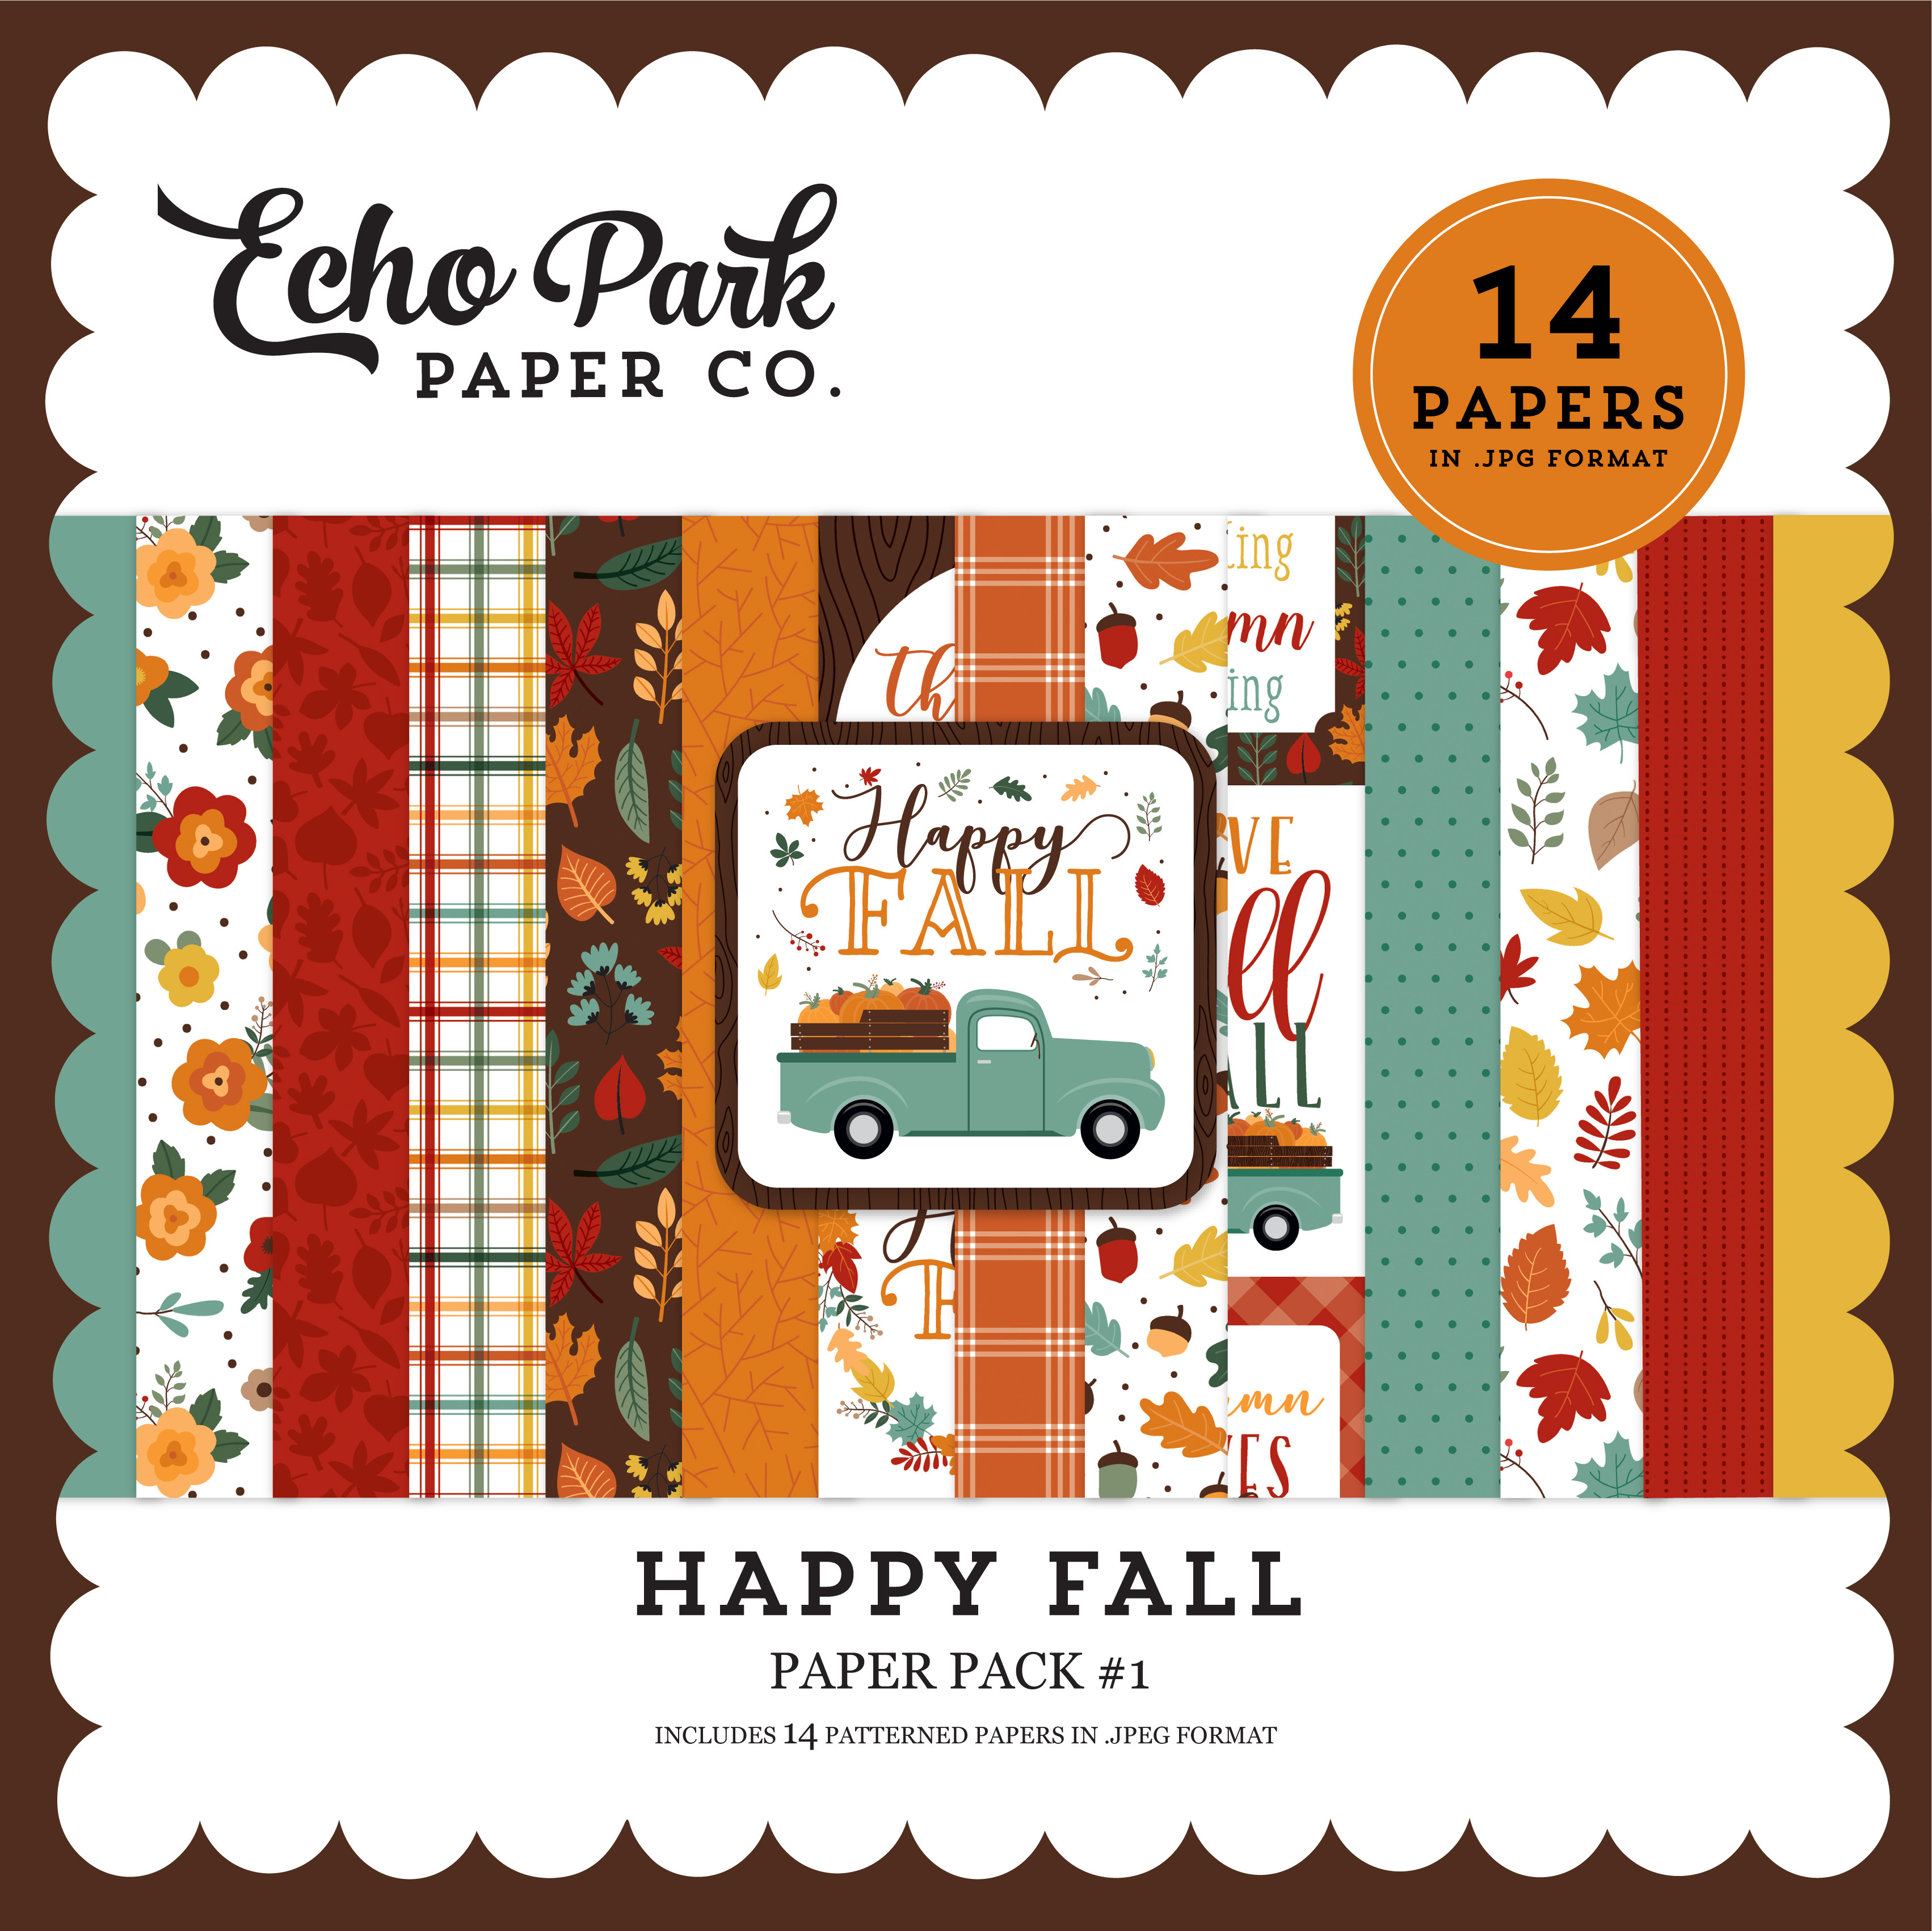 Happy Fall Paper Pack #1